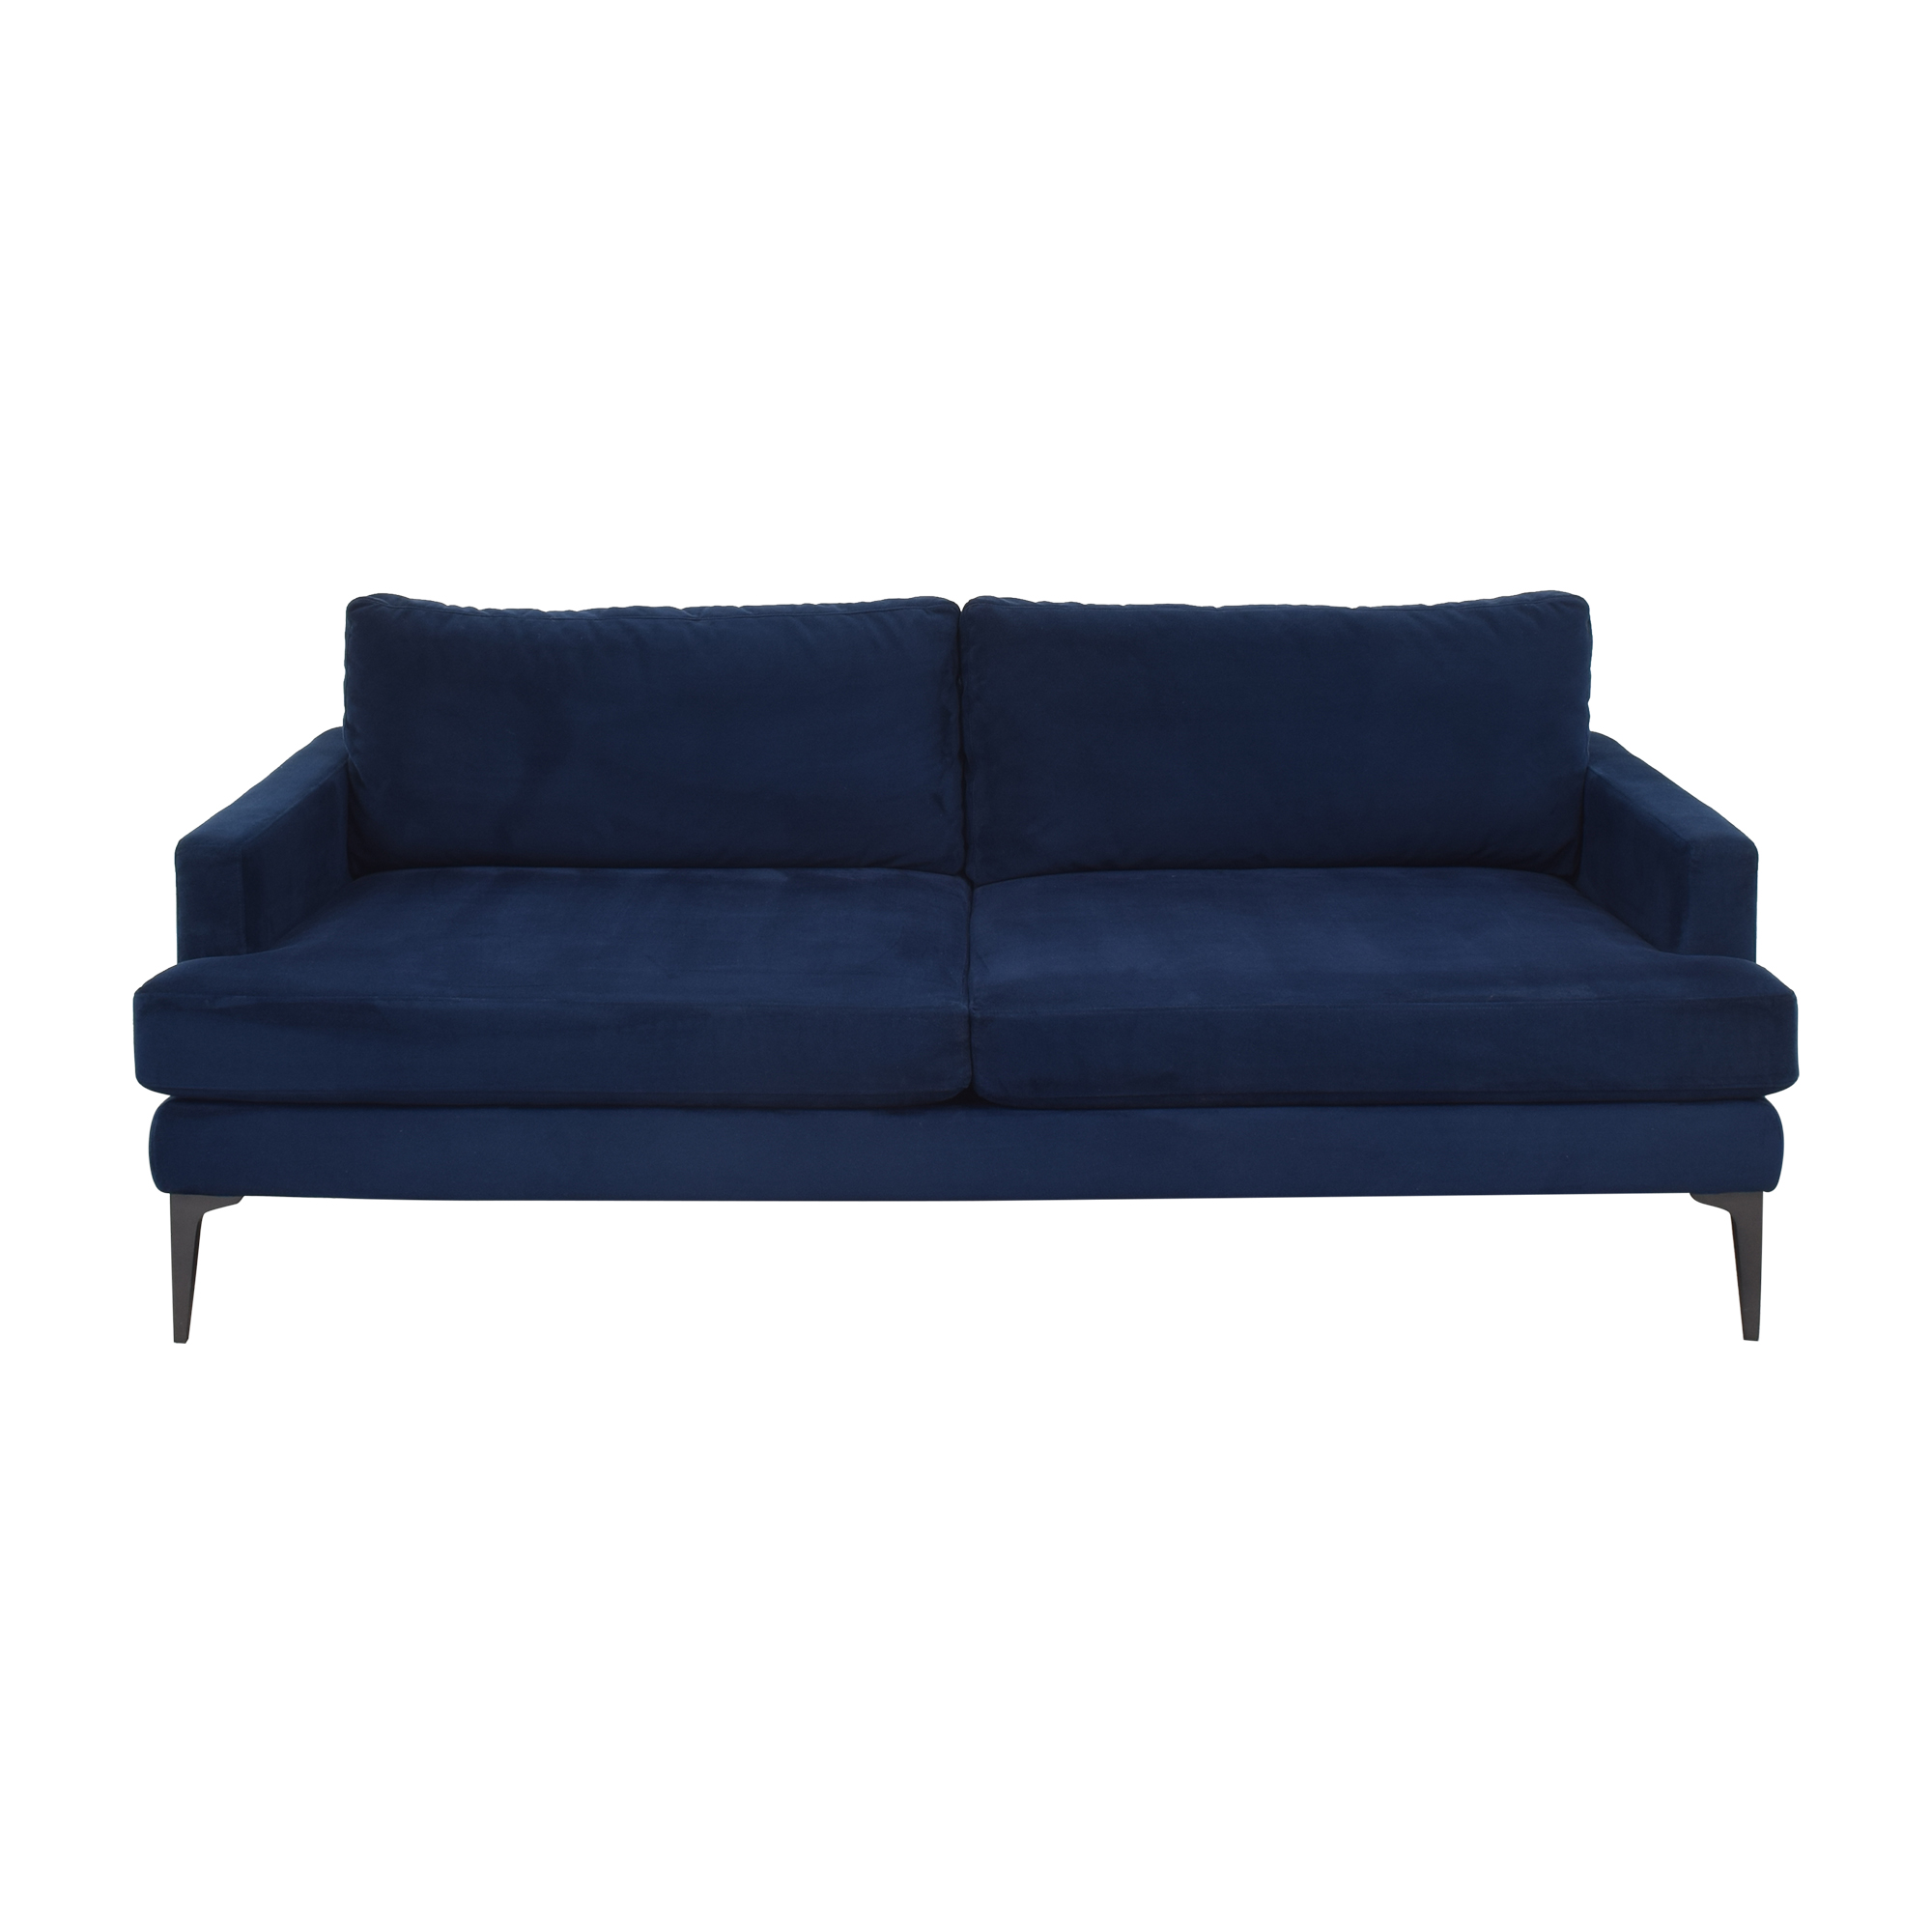 West Elm West Elm Andes Sofa ma